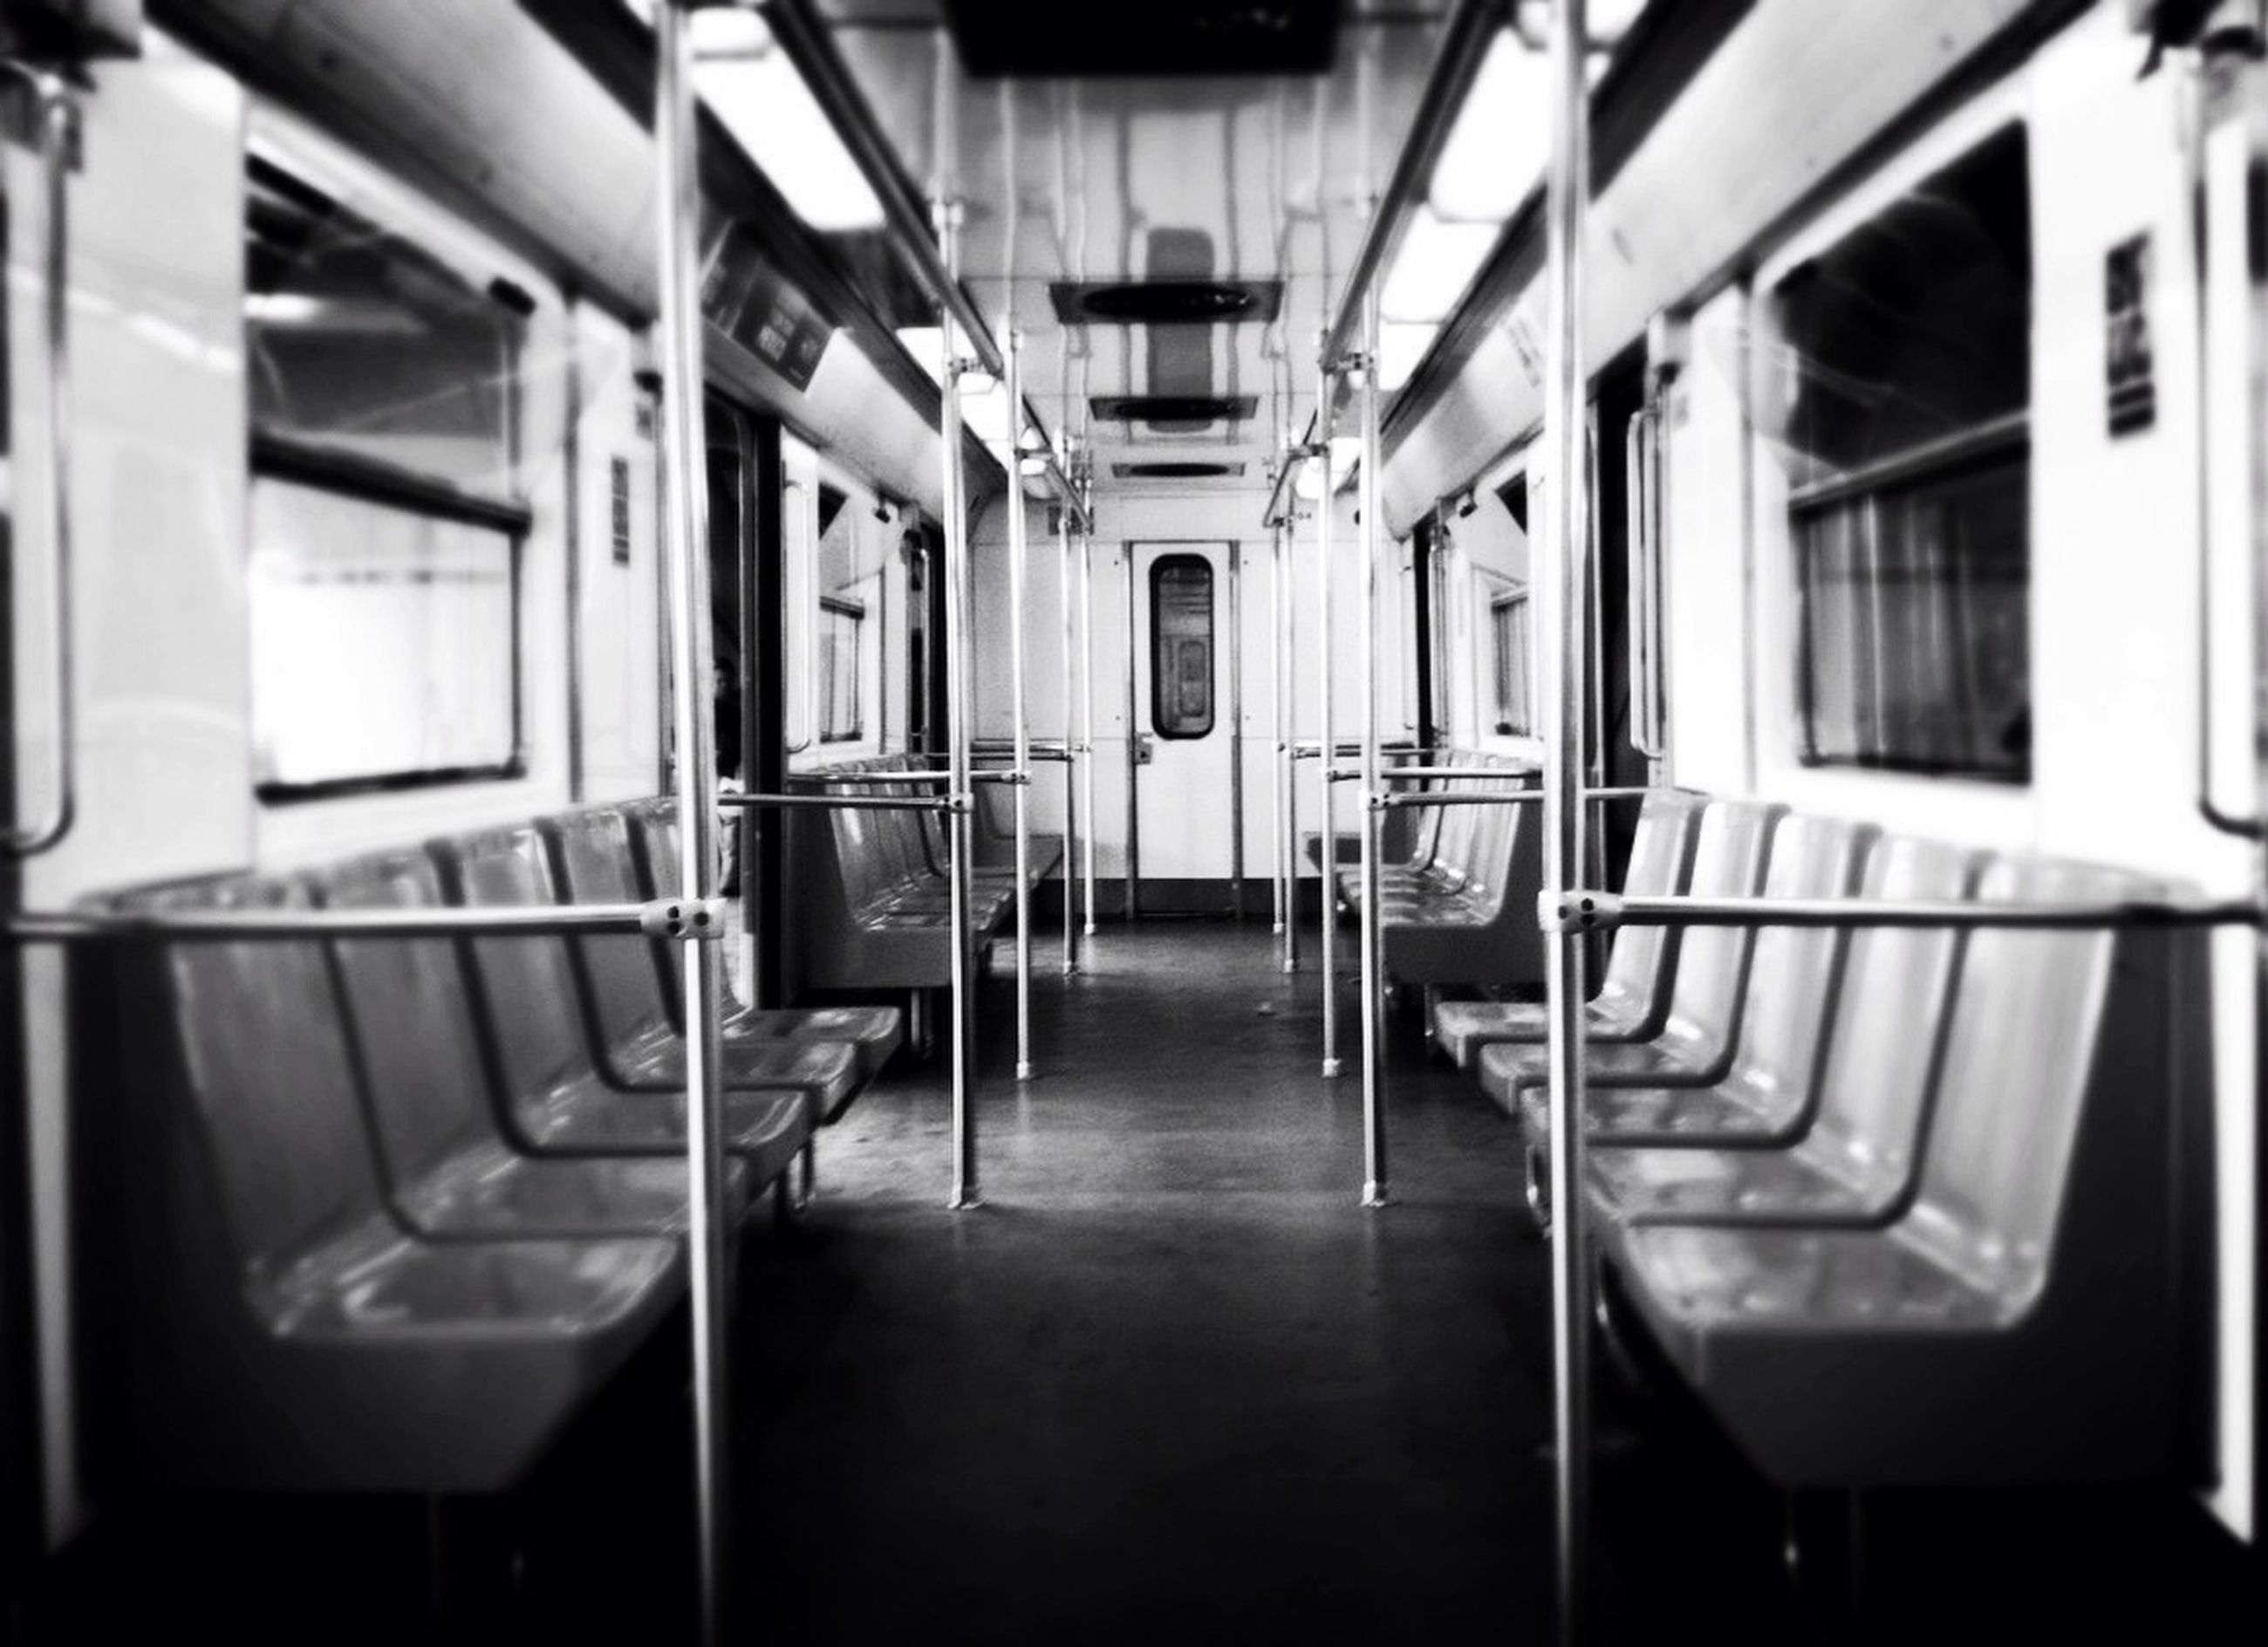 indoors, window, absence, empty, vehicle seat, transportation, interior, vehicle interior, public transportation, reflection, chair, architecture, no people, in a row, built structure, mode of transport, day, technology, passenger train, train - vehicle